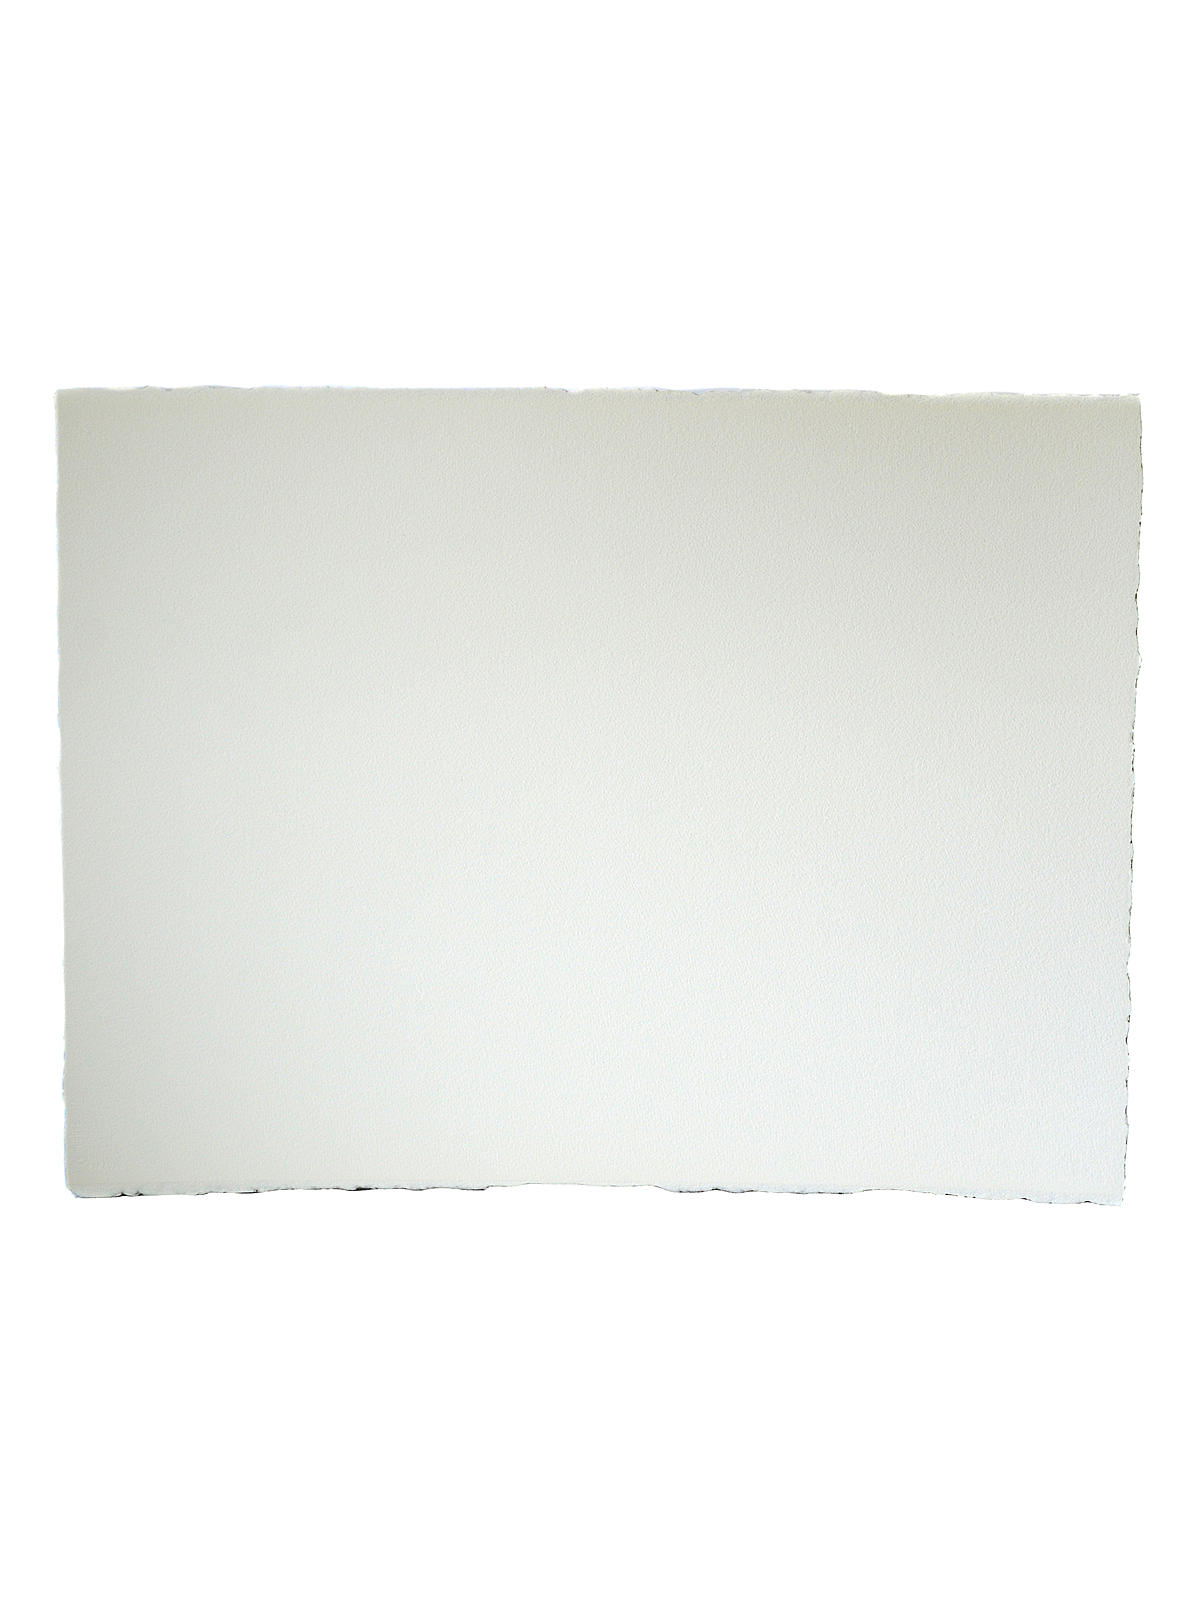 arches watercolor paper Aquacover liquid watercolor paper arches natural white 1 oz bottle, creative mark, this opaque white liquid watercolor is designed to be used as white-out on.